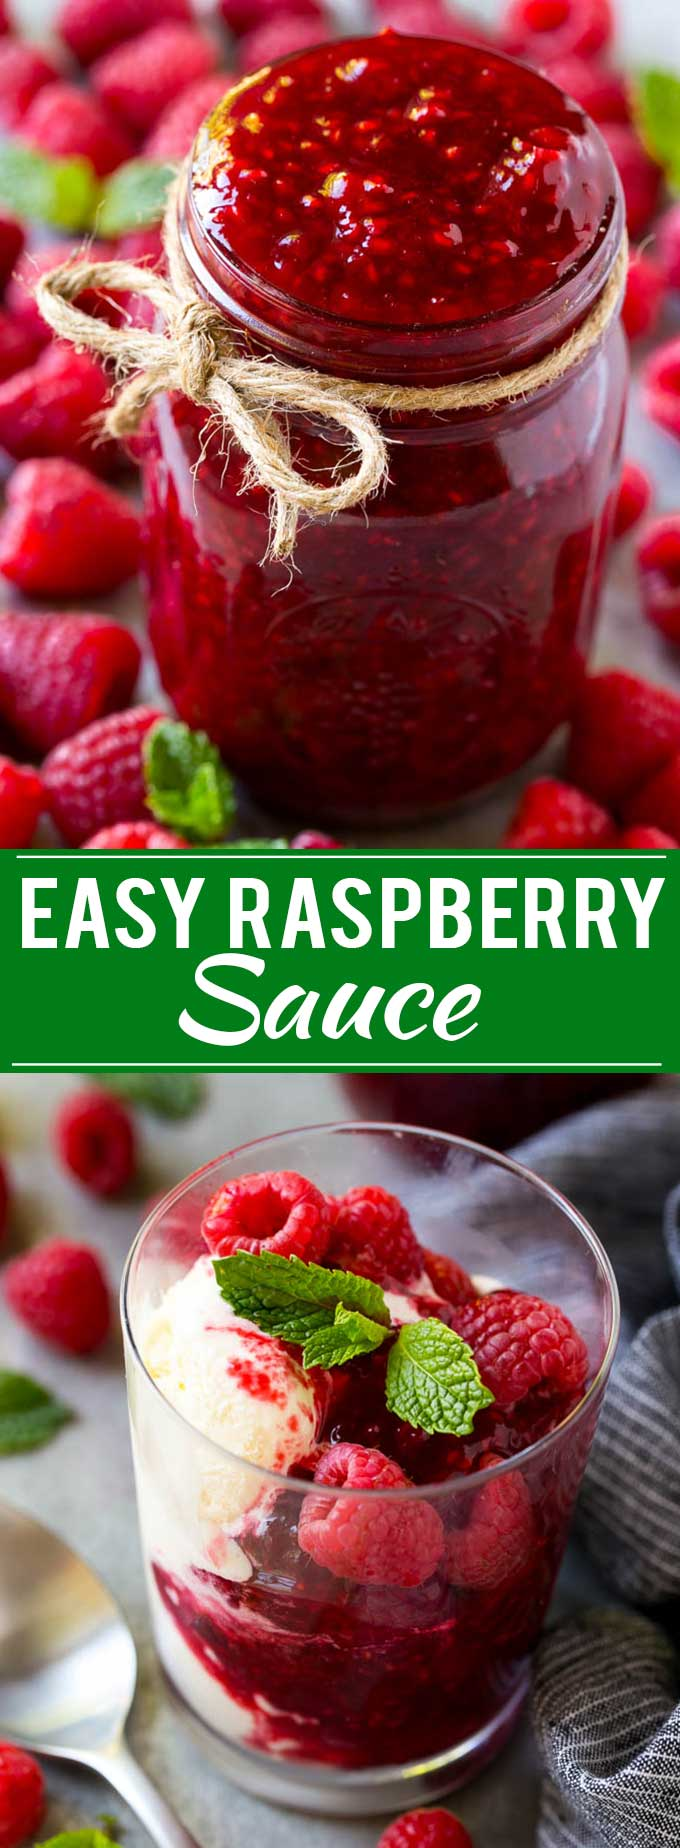 Raspberry Sauce Recipe | Homemade Raspberry Sauce | Raspberry Recipe #raspberries #dessert #dinneratthezoo